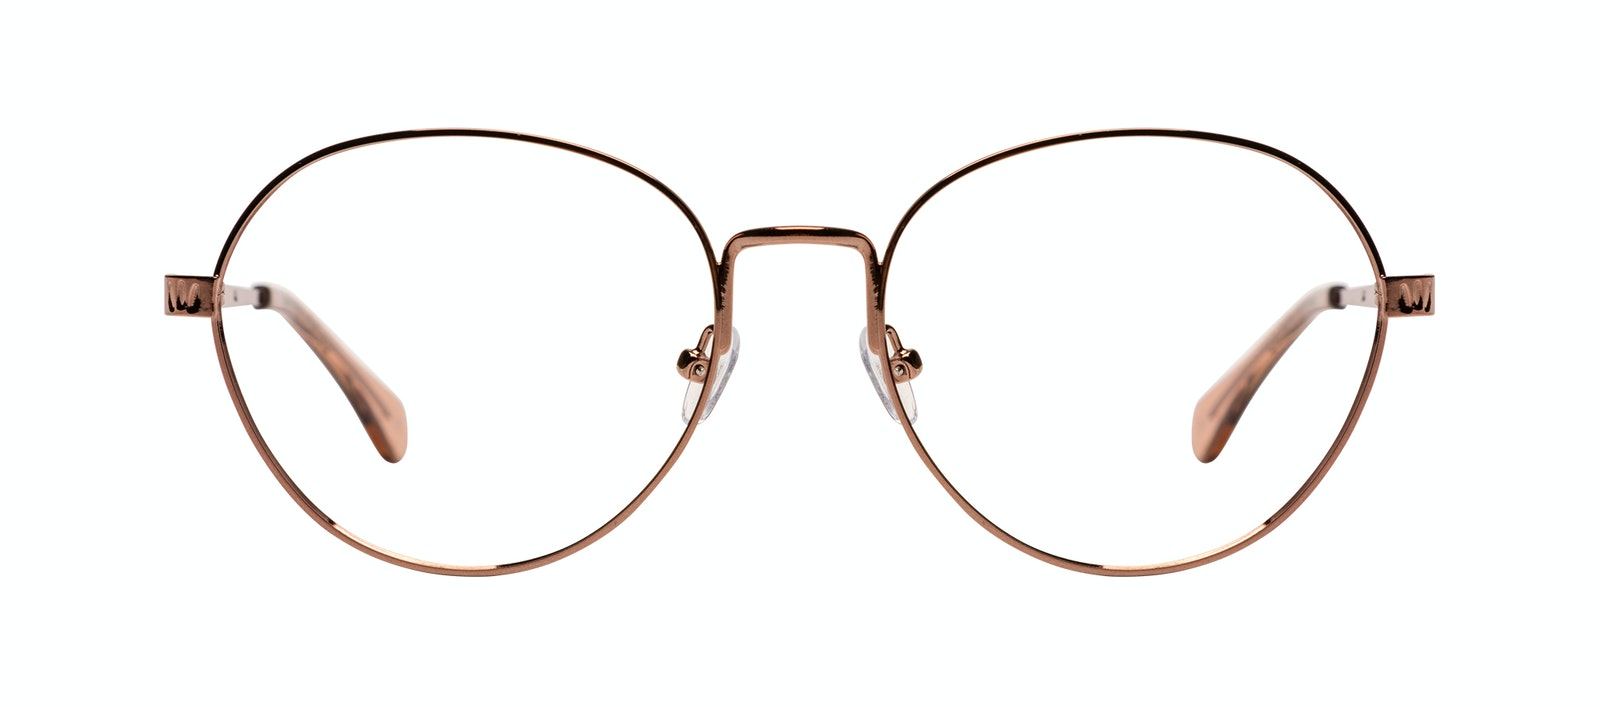 Affordable Fashion Glasses Round Eyeglasses Women Brace M Rose Gold Front